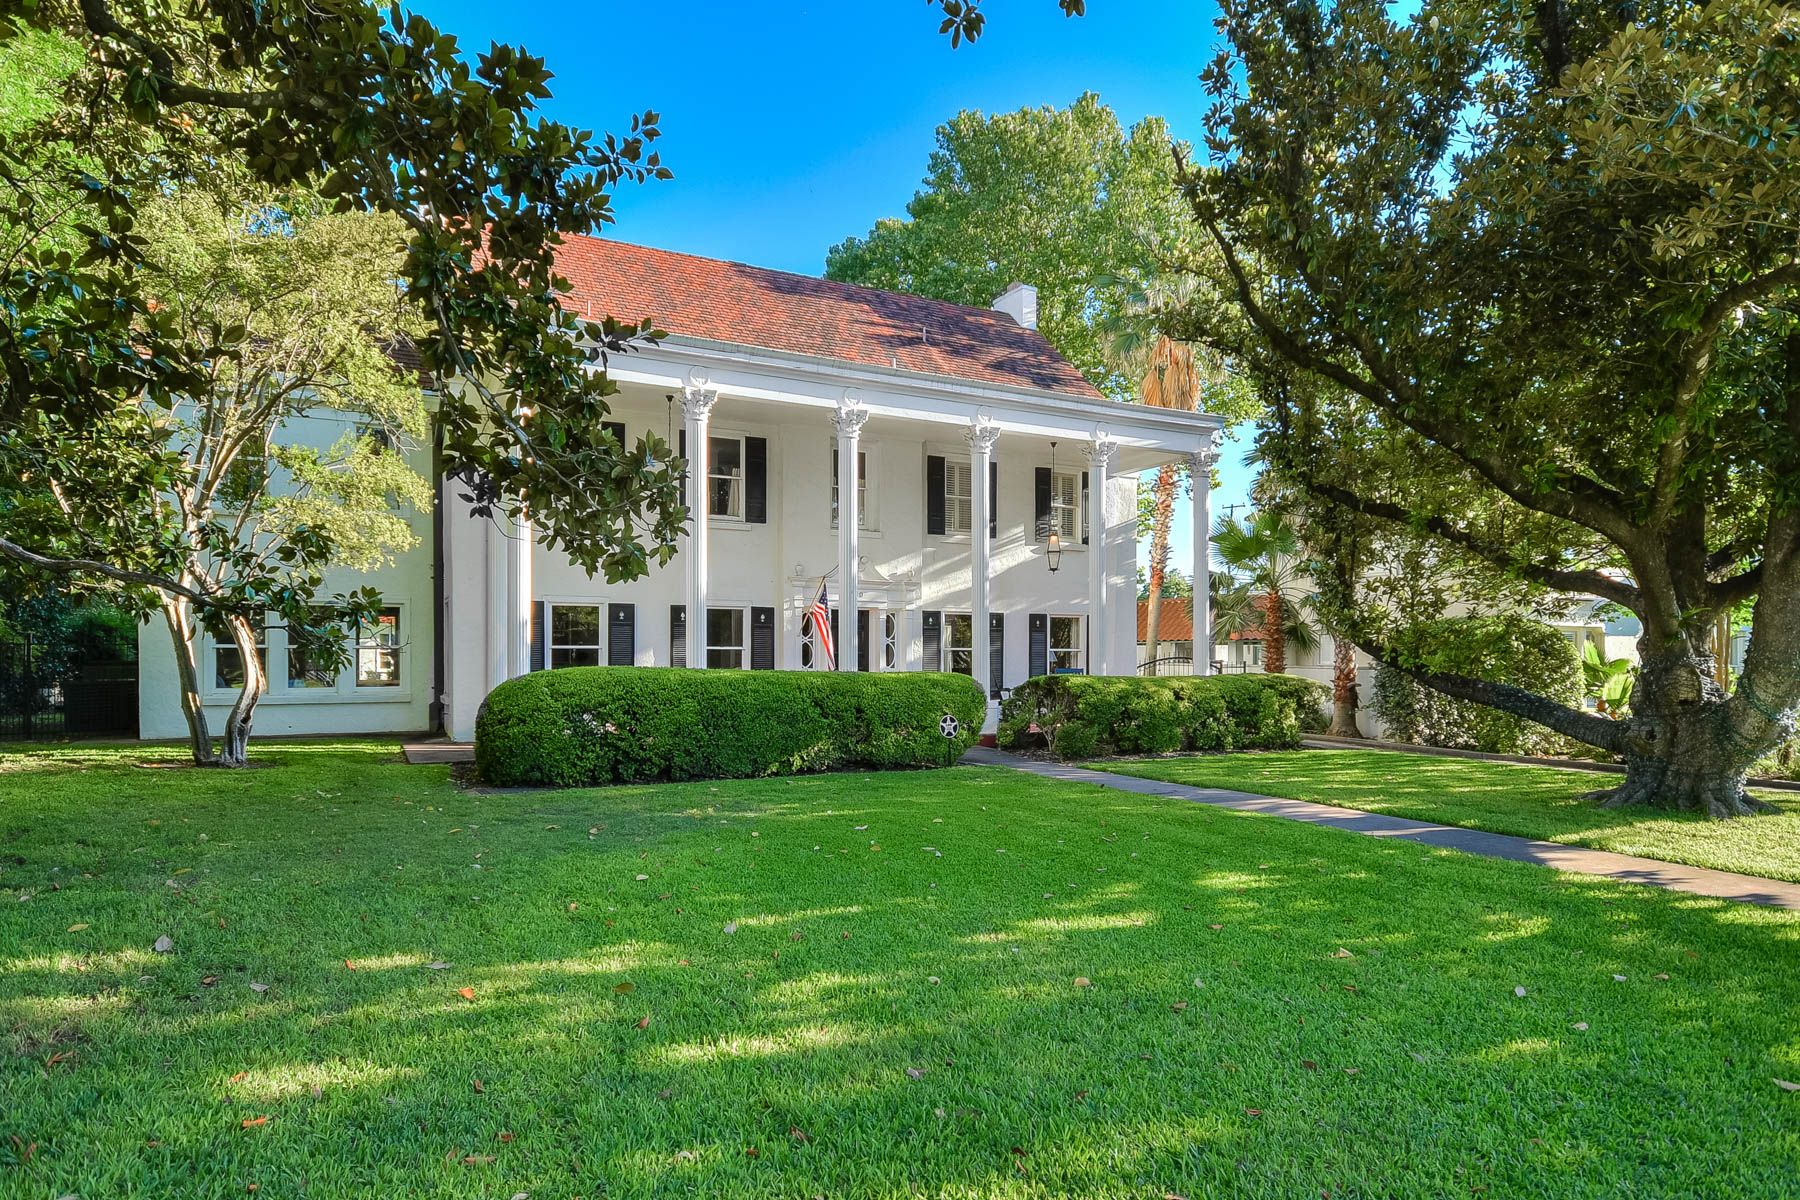 Single Family Home for Sale at Stunning Colonial on Prestigious Kings Hwy 230 W Kings Hwy San Antonio, Texas 78212 United States